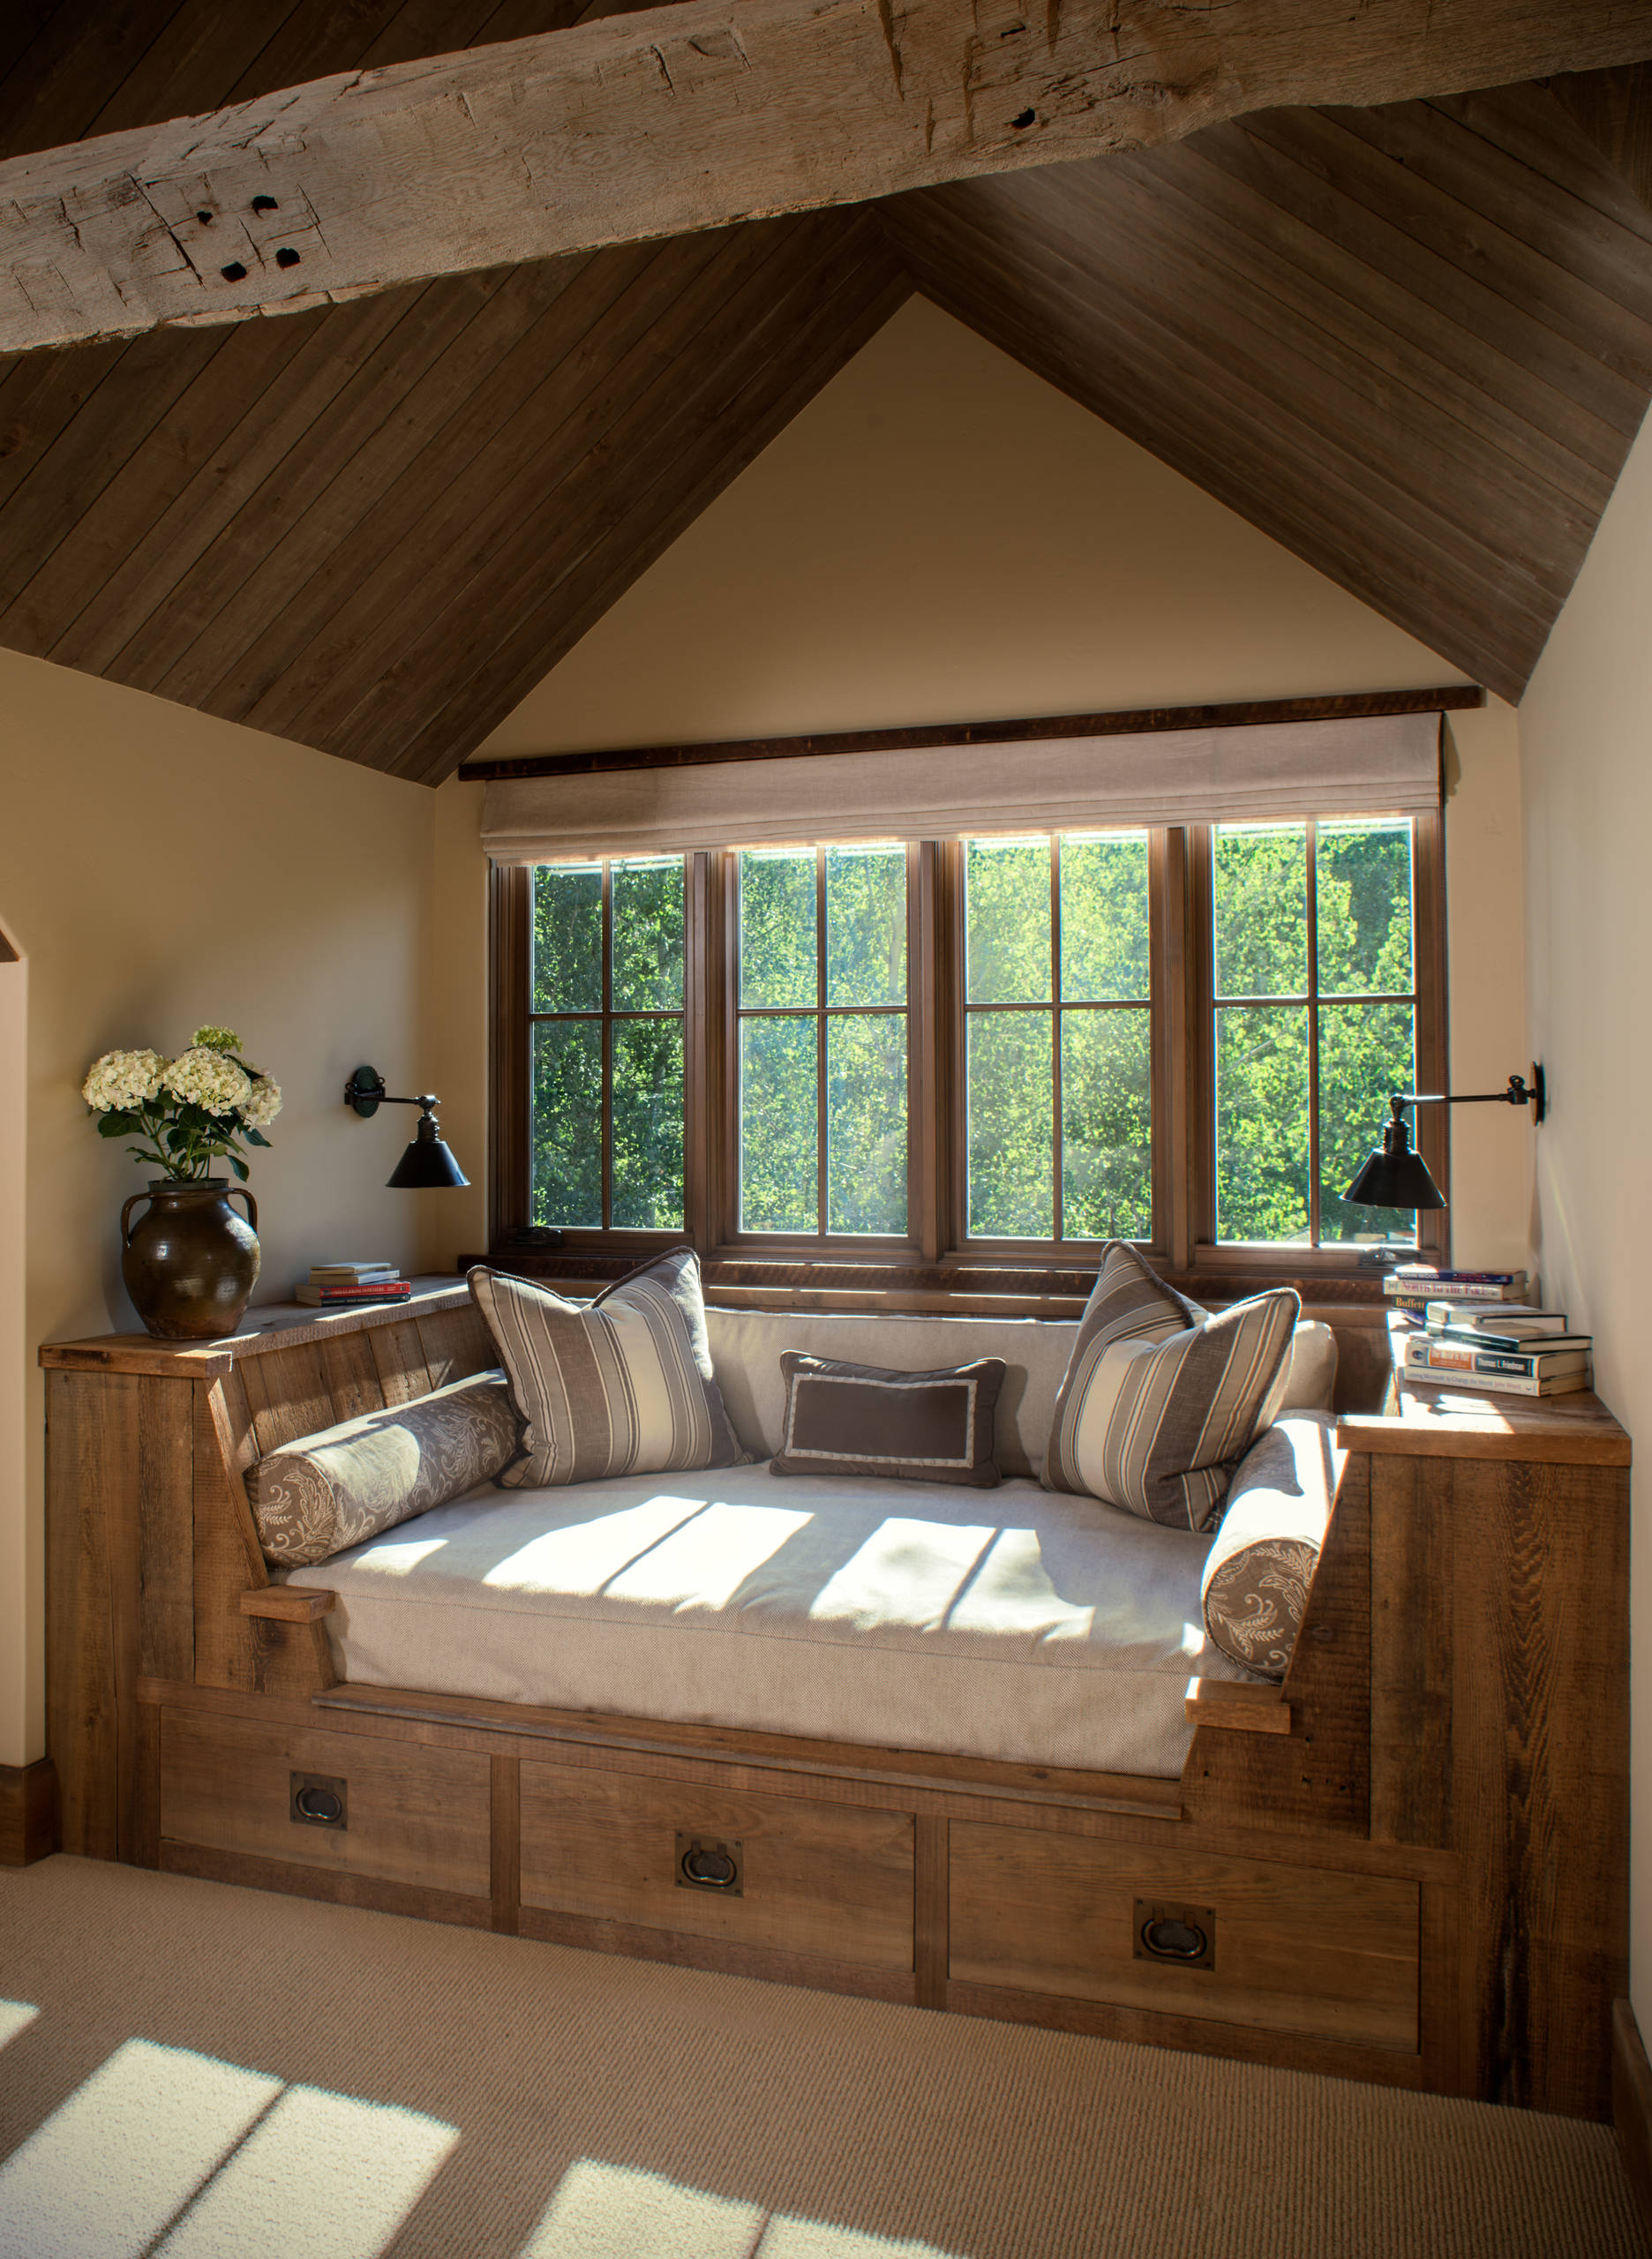 75 Beautiful Carpeted Family Room Pictures Ideas February 2021 Houzz